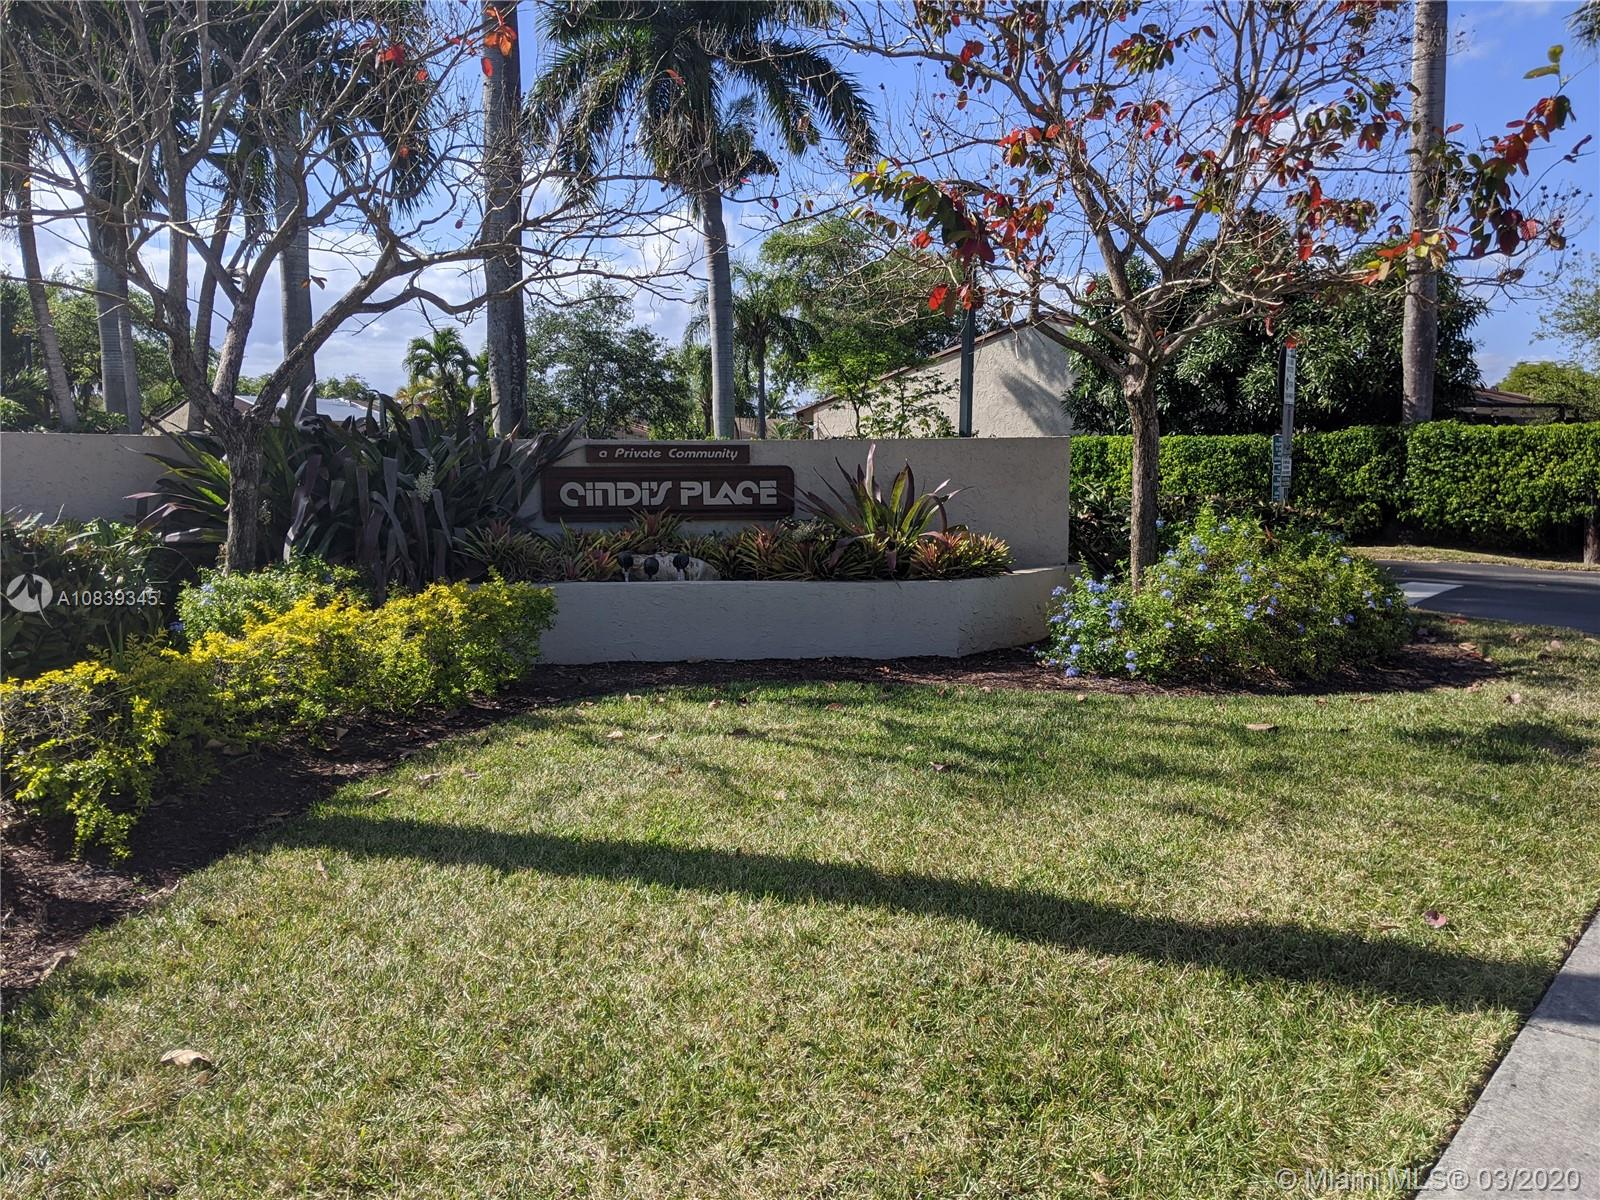 13600 SW 102nd Ln # 13600, Miami, Florida 33186, 2 Bedrooms Bedrooms, ,2 BathroomsBathrooms,Residential,For Sale,13600 SW 102nd Ln # 13600,A10839345